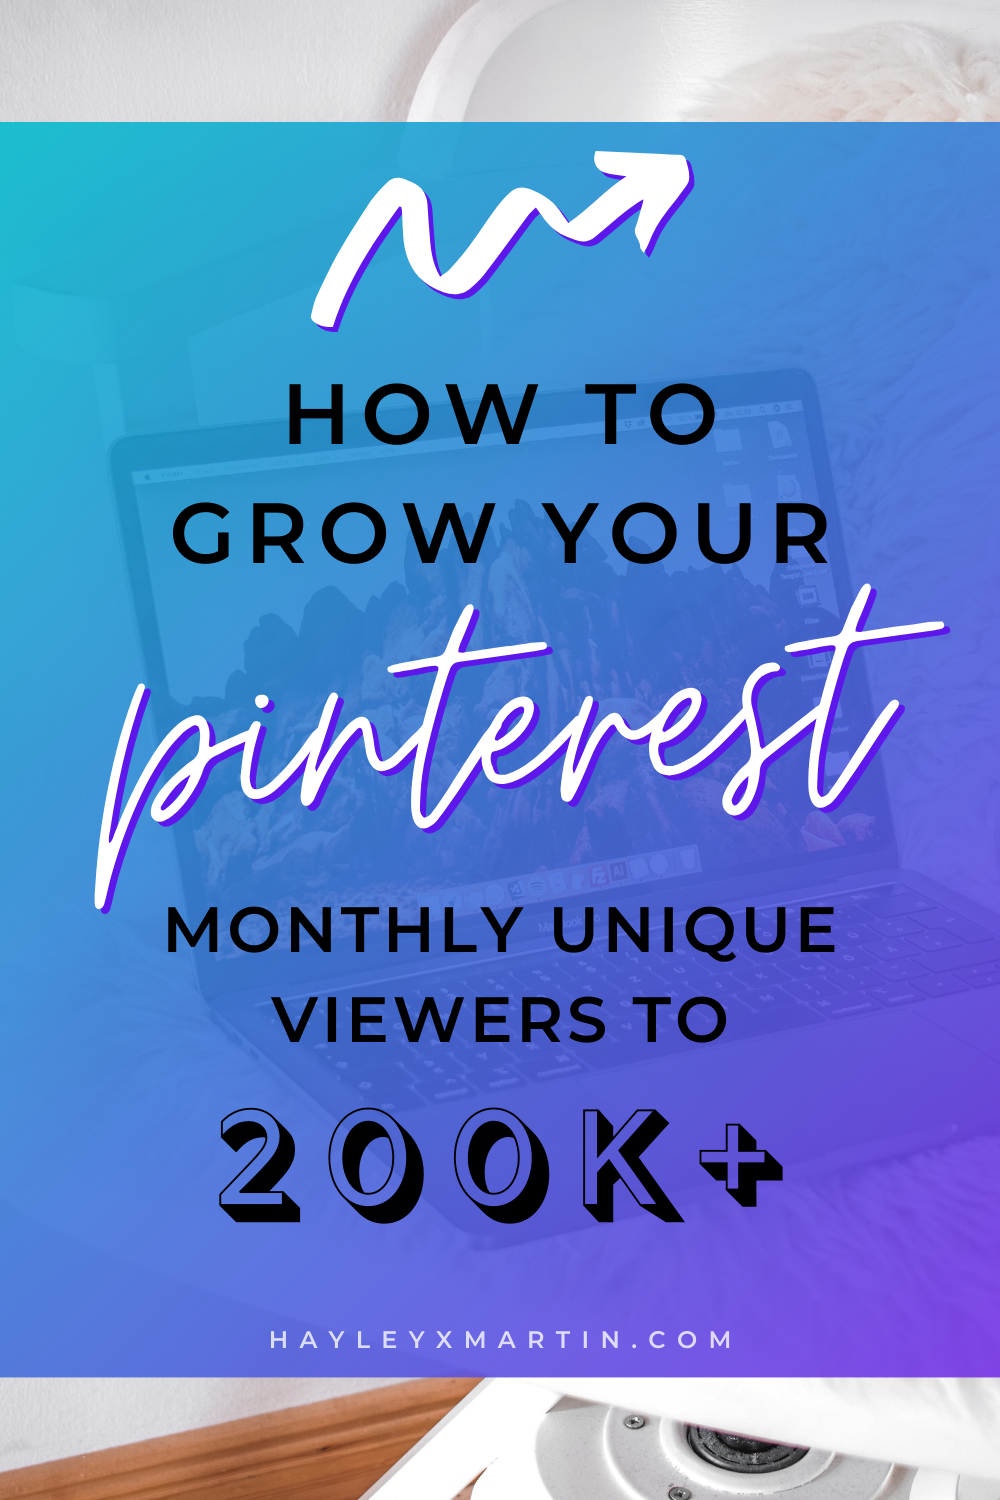 HOW TO GROW YOUR PINTEREST MONTHLY VIEWERS TO 200K+ | GROW YOUR BLOG TRAFFIC | HAYLEYXMARTIN